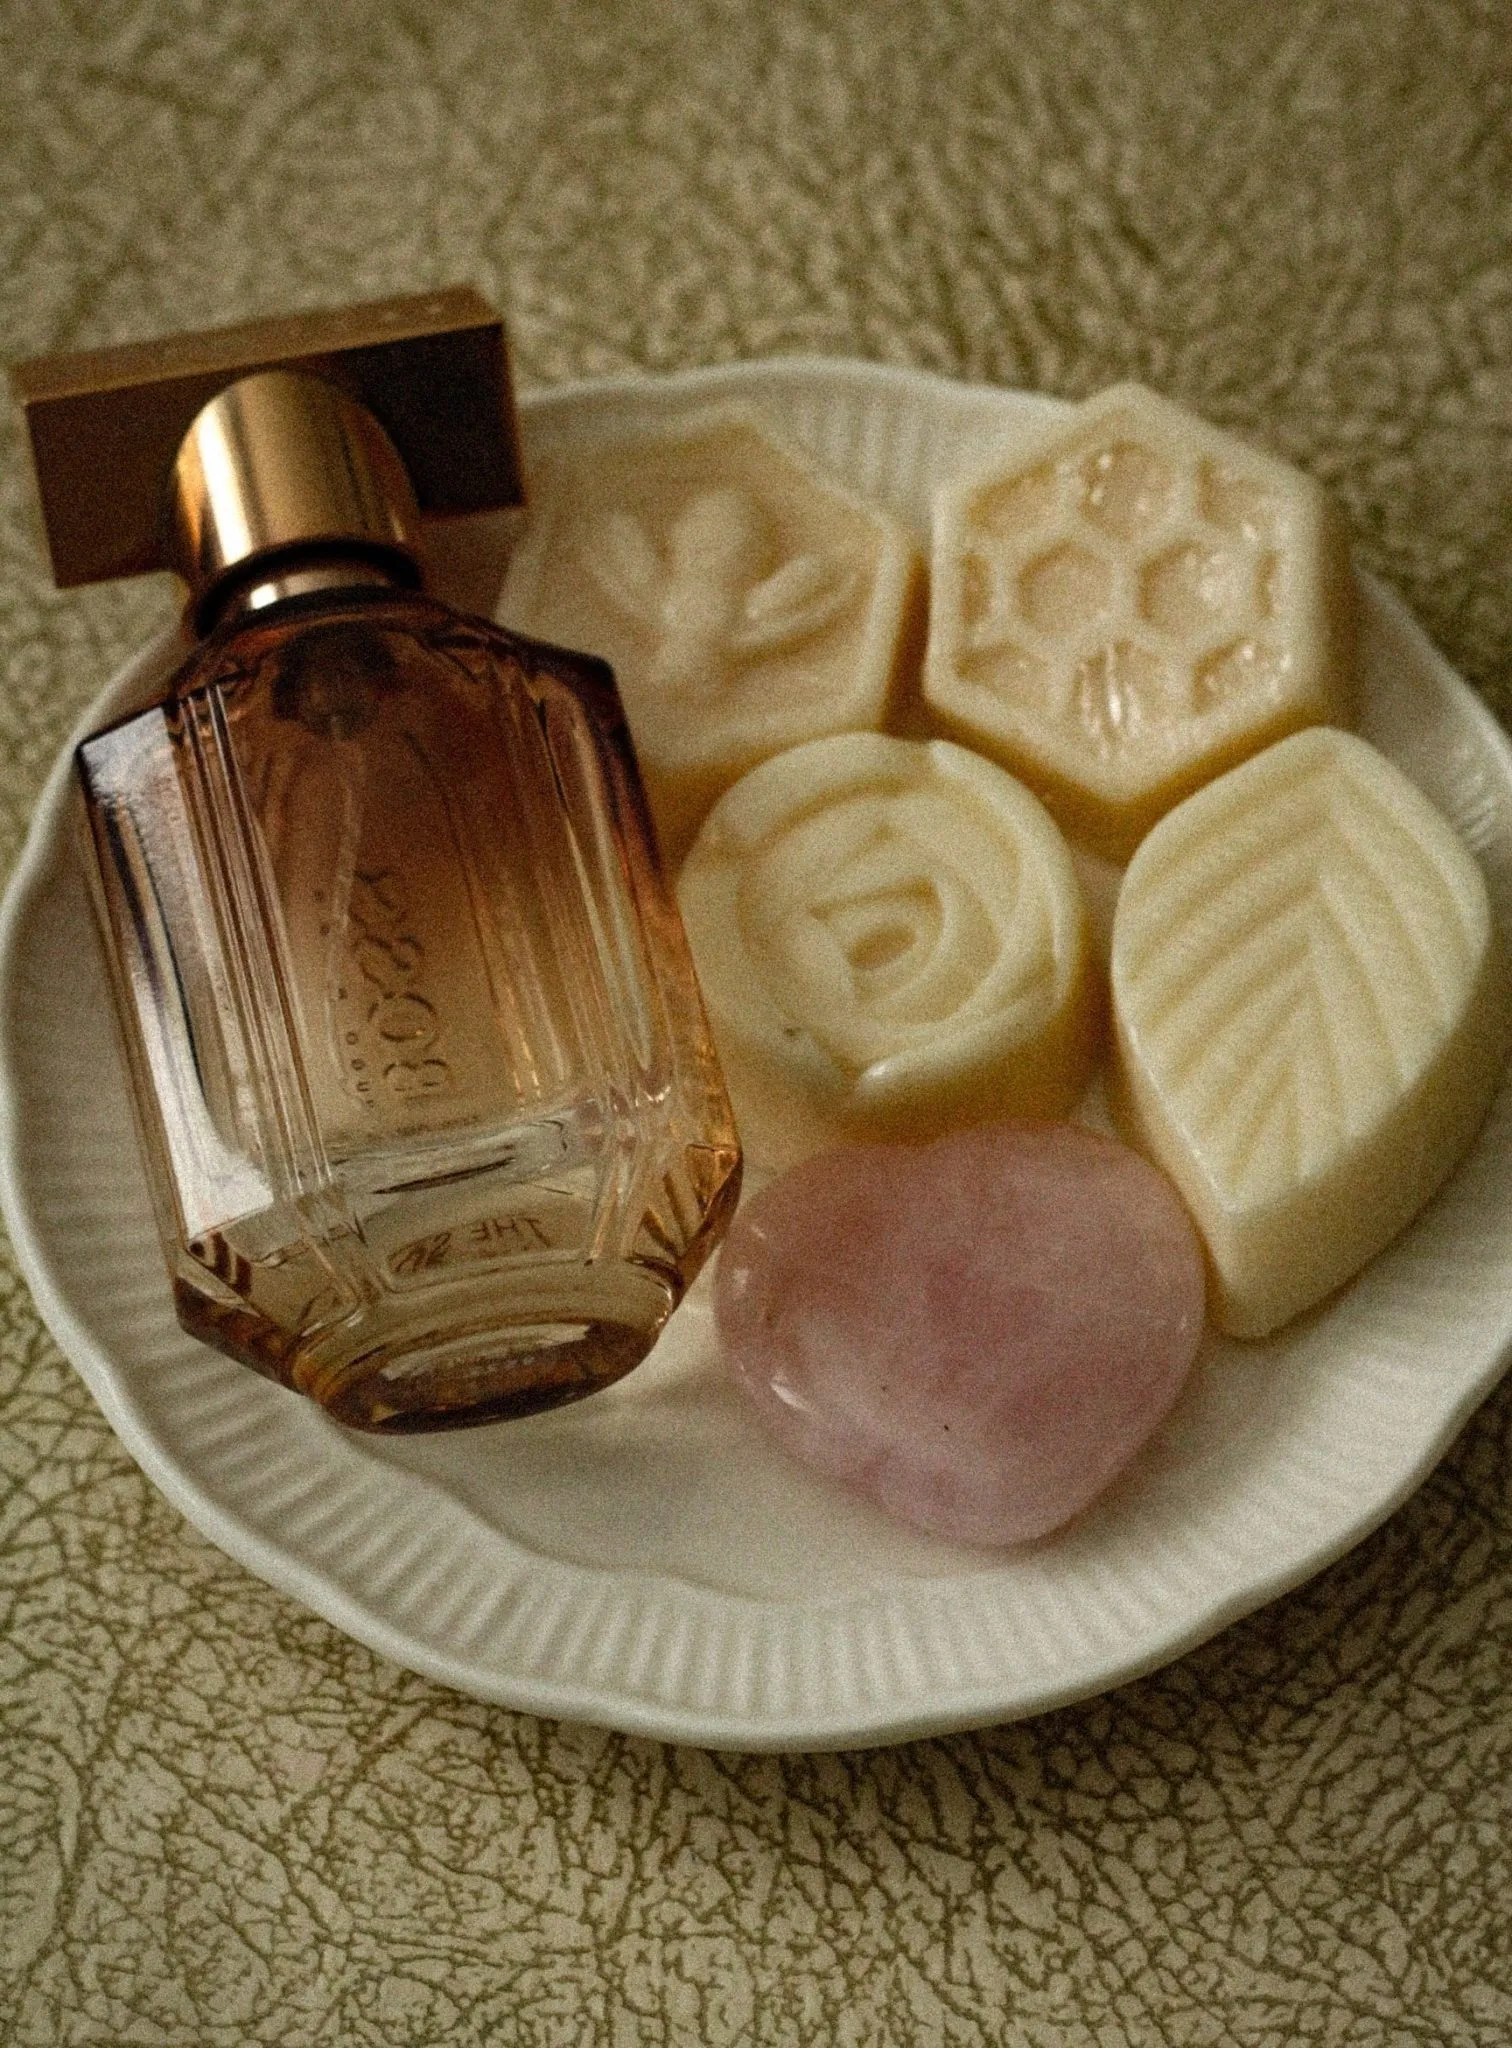 Image of perfume and soaps on plate for blog on mental health stigma